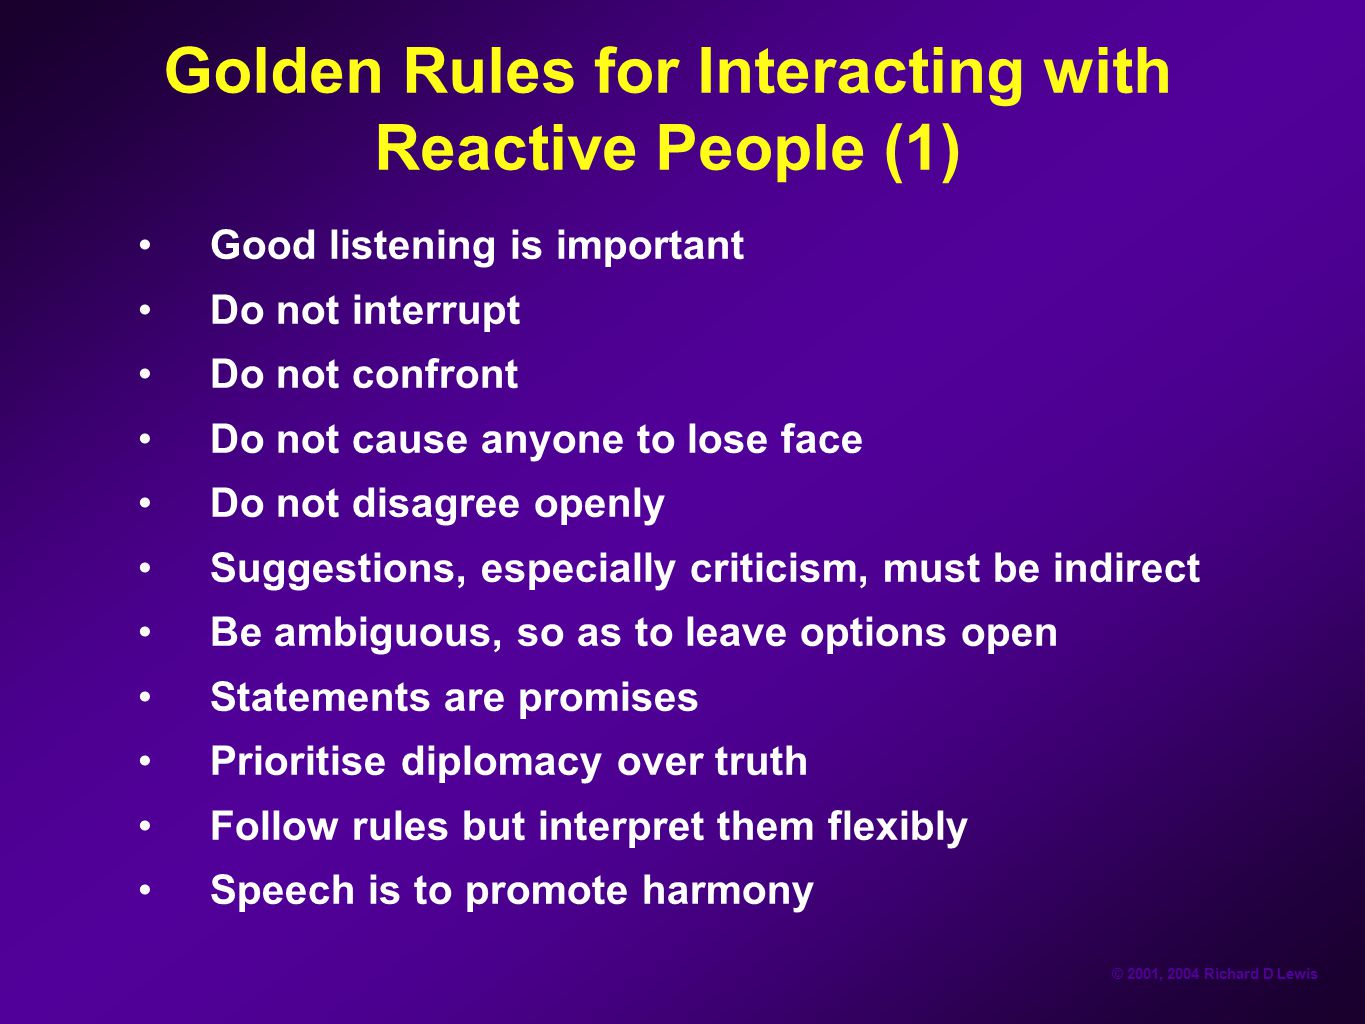 Golden Rules for Interacting with Reactive People (1)